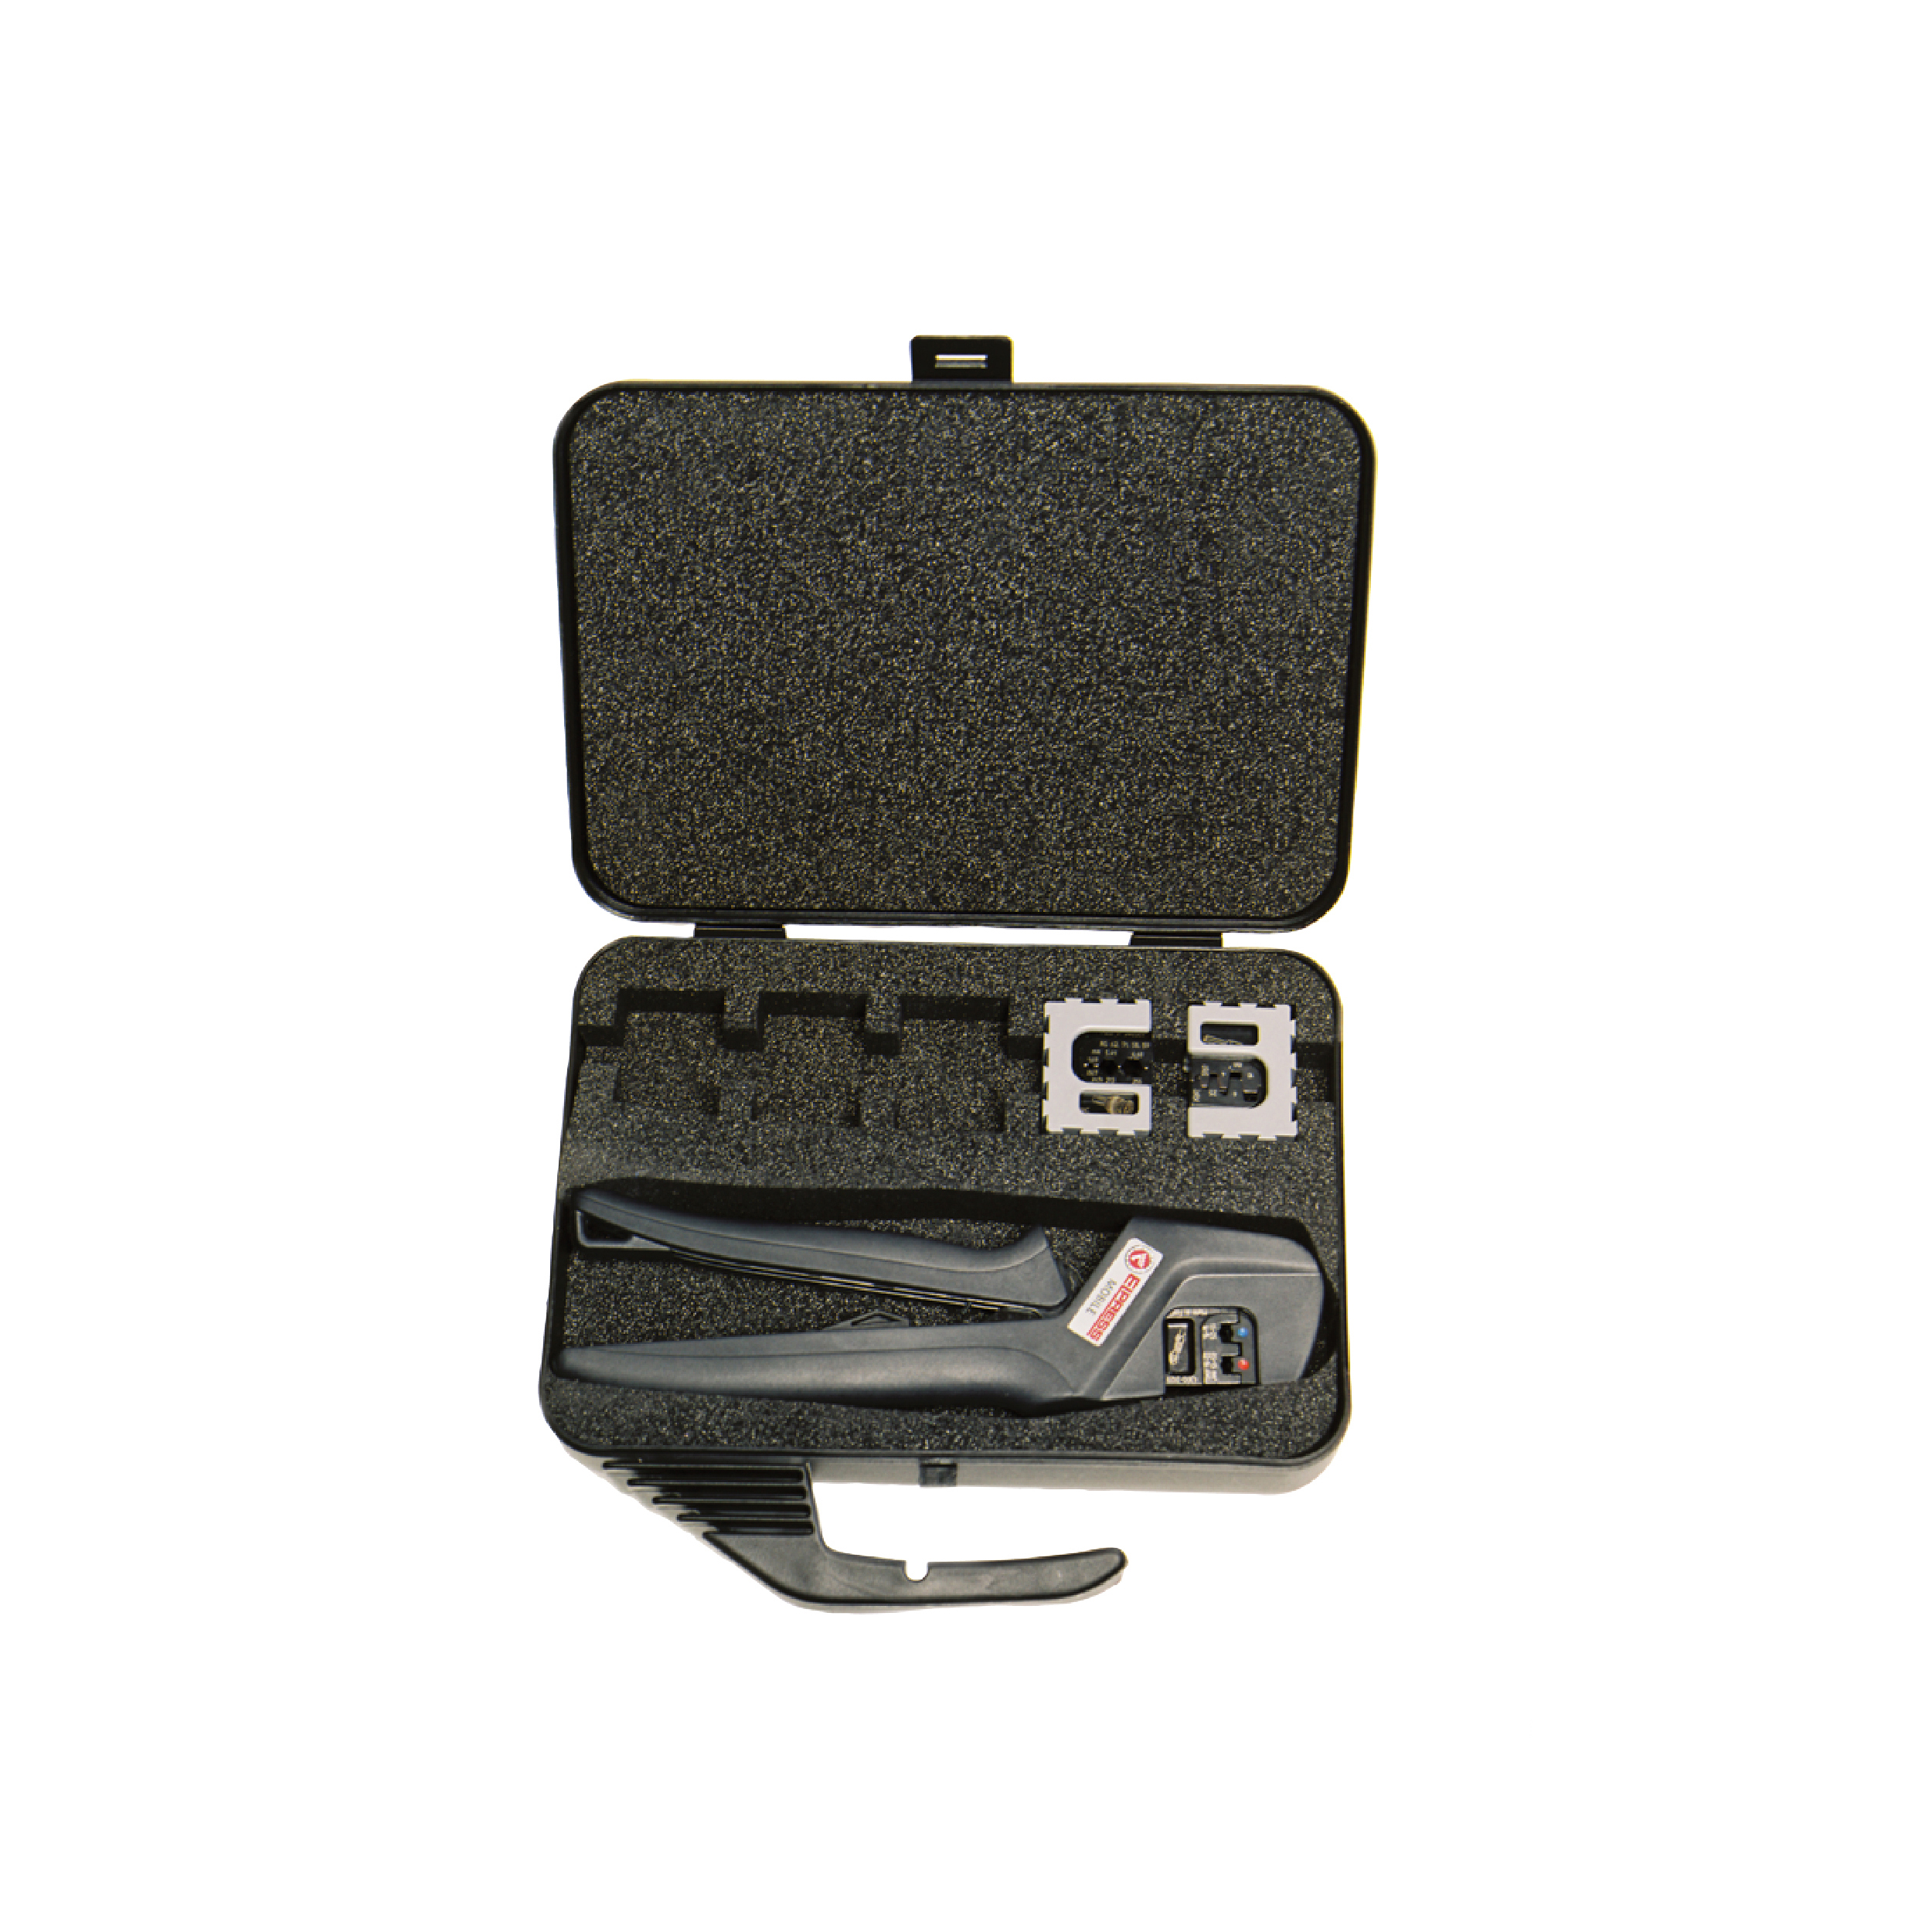 Elpress Mobile Box for Elpress Mobile Crimping Tool